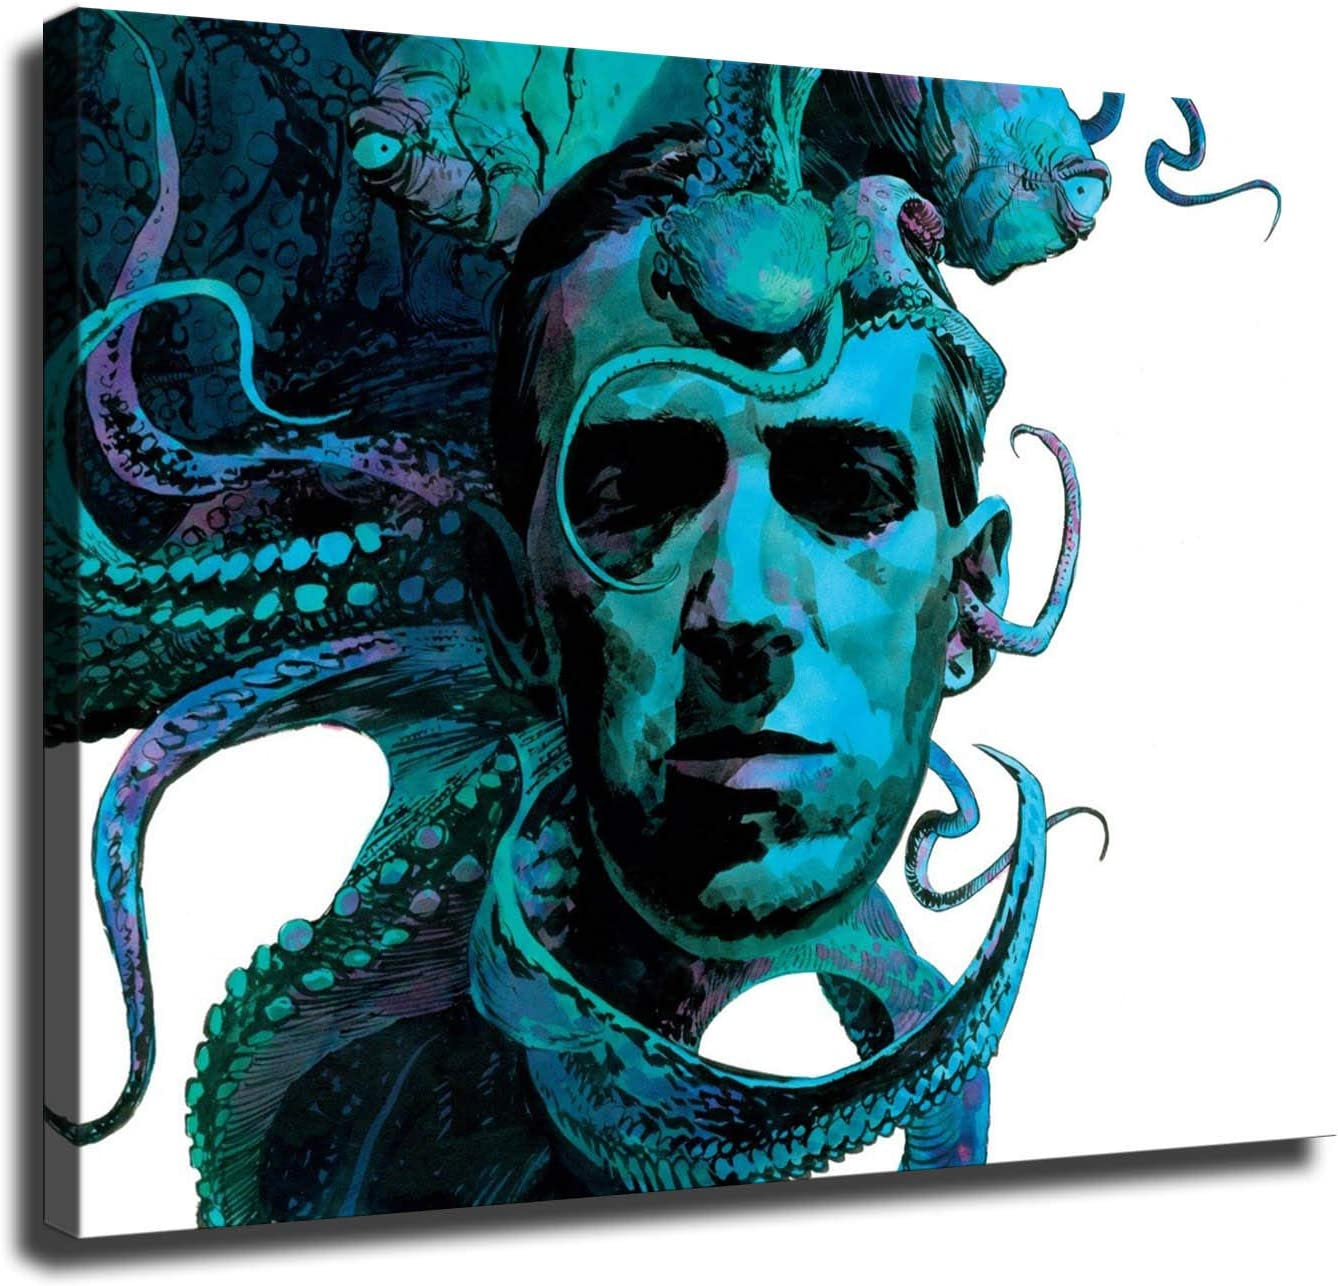 H. P. Lovecraft Canvas Prints Famous Writer Poster Wall Art for Home Office Corridor Decorations unframed 16